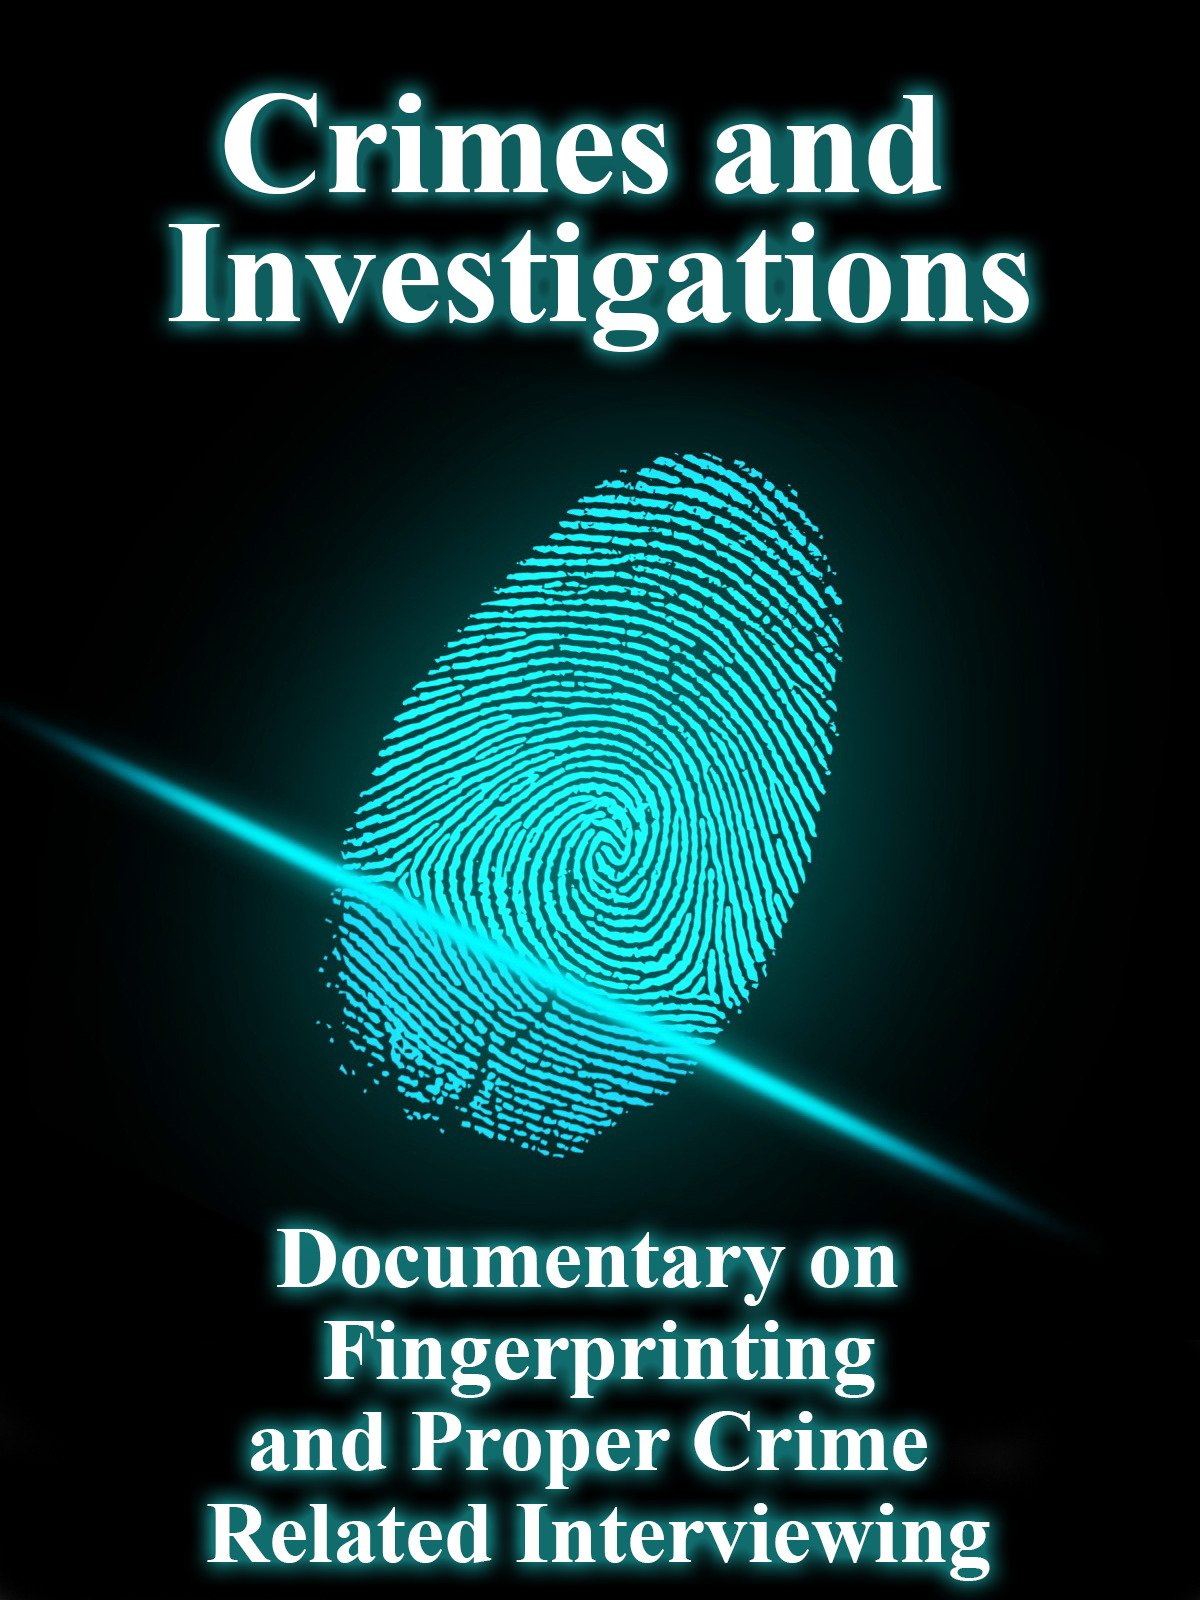 Crimes and Investigations Documentary on Fingerprinting and Proper Crime Related Interviewing on Amazon Prime Instant Video UK